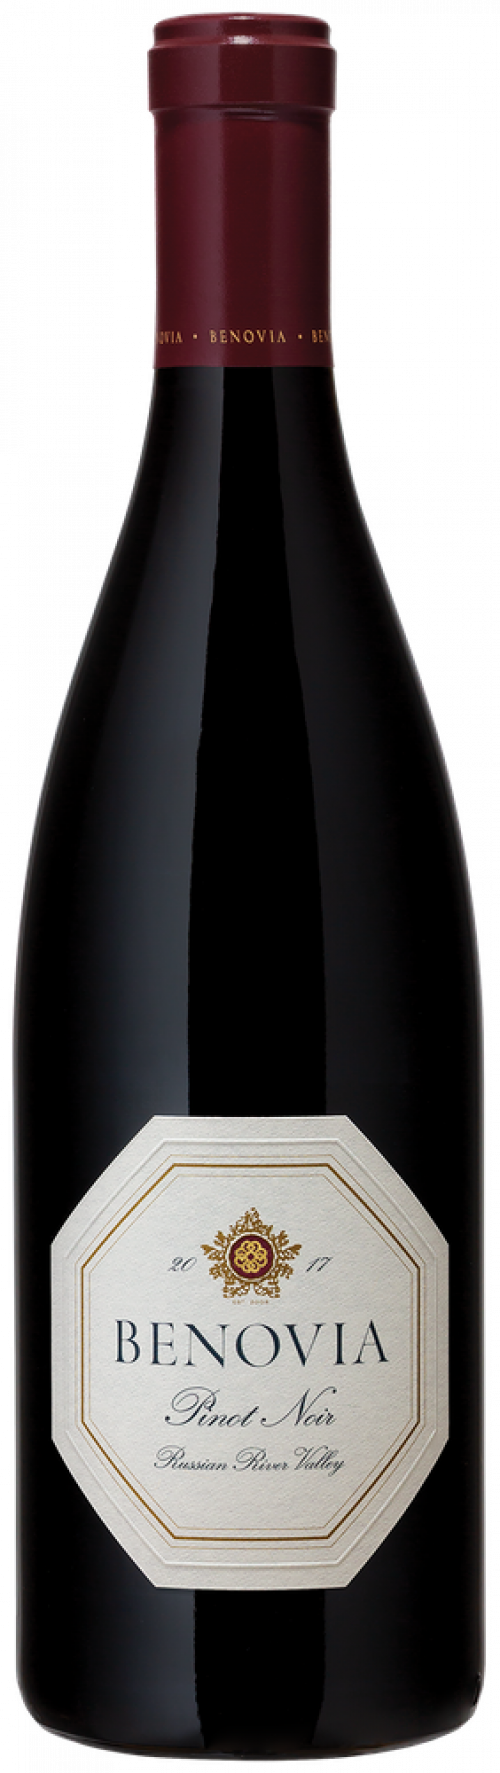 2017 Benovia Russian River Pinot Noir 750ml